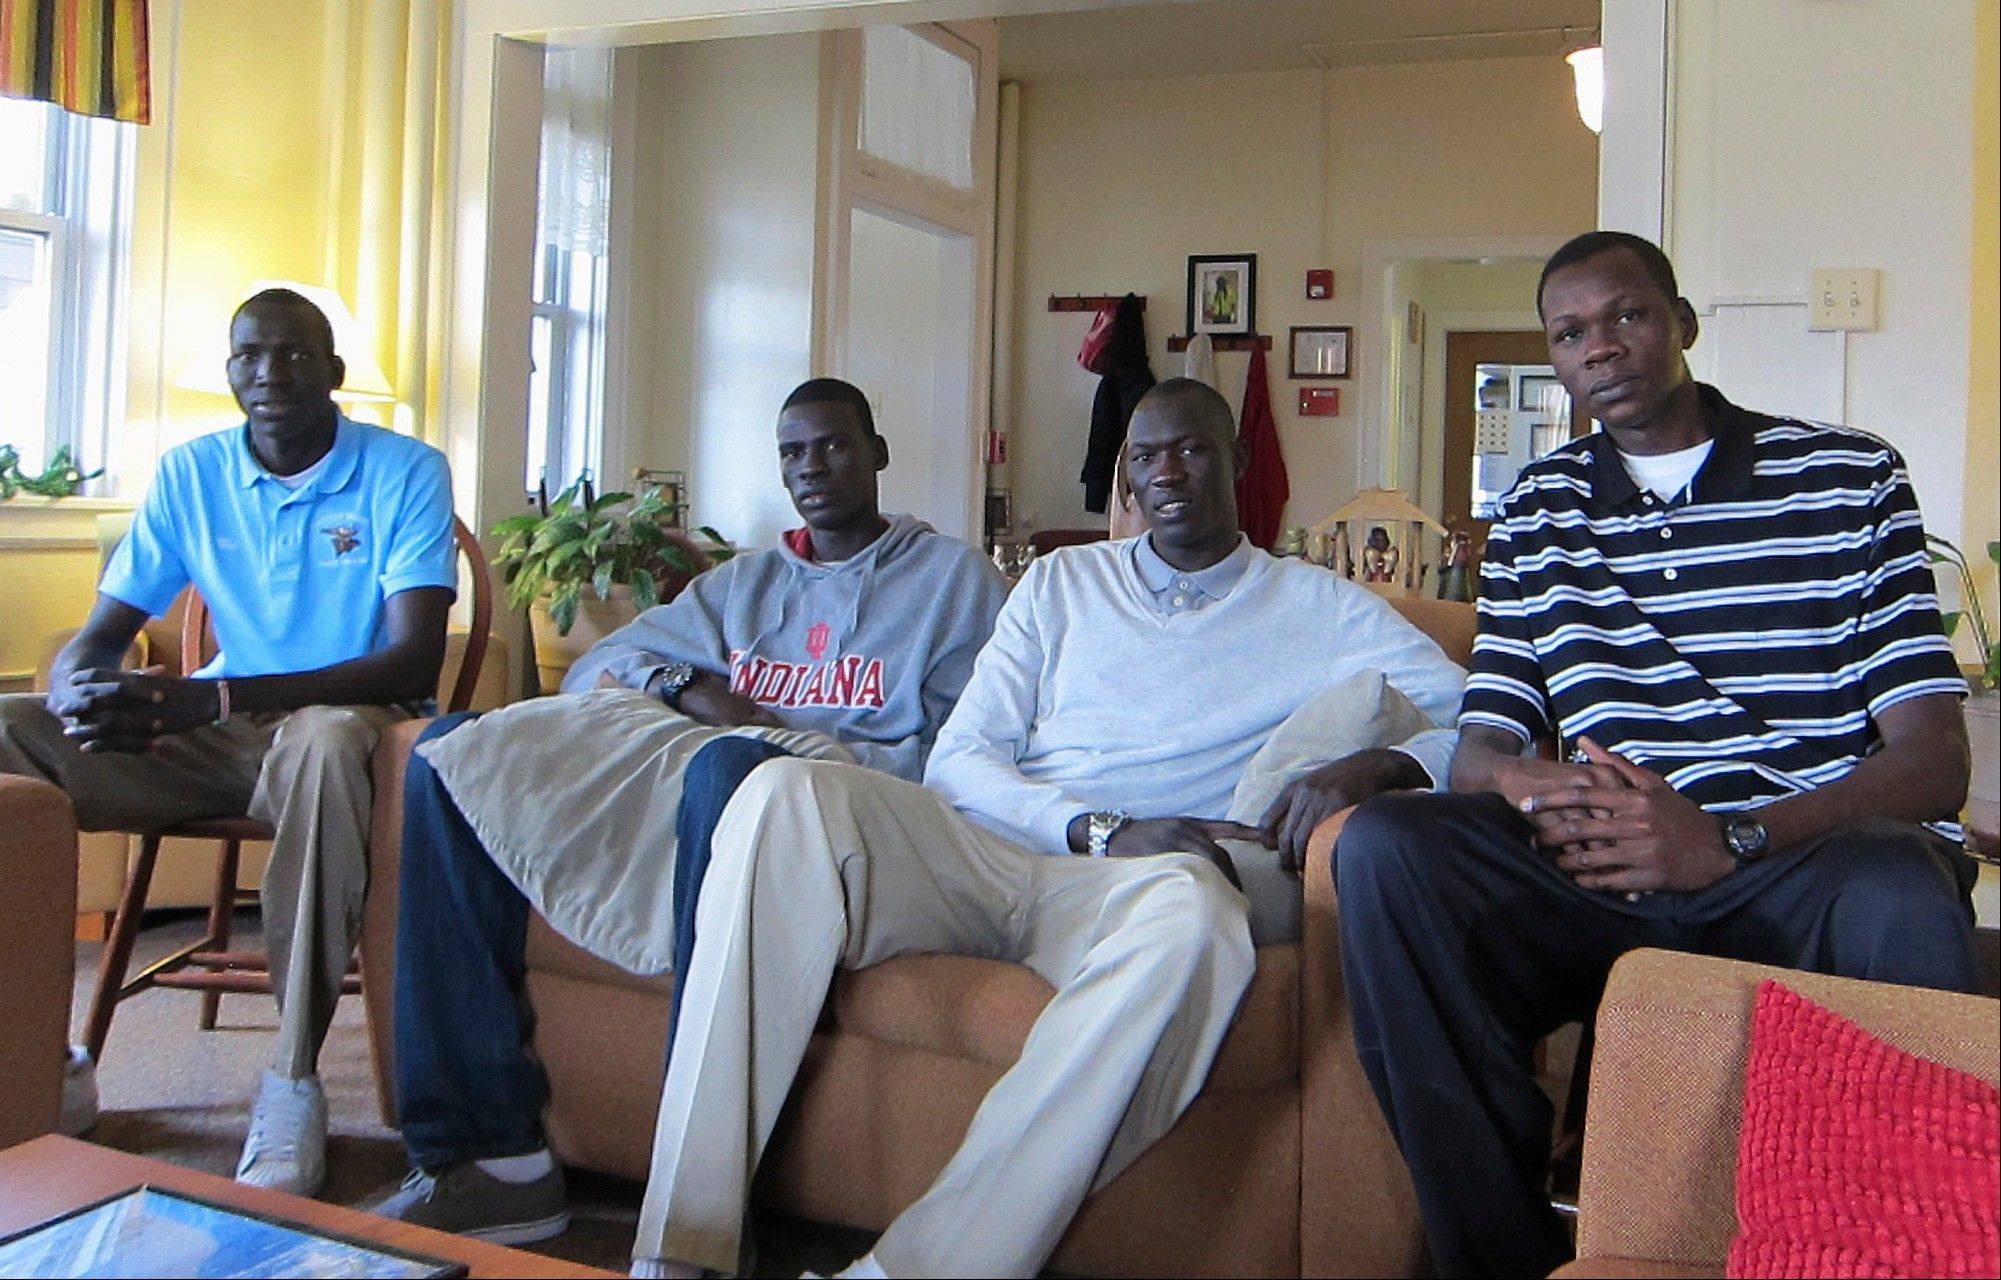 In this Friday, Dec. 7, 2012 photo, Sudanese students from left, Wal Khat, Mangisto Deng, Makur Puou and Akim Nyang pose for a photo in the living room of one of the student residences on the campus of Mooseheart Child City and School in Mooseheart, Ill., a residential center for children in Batavia. The Illinois High School Association board ruled Monday on the eligibility of the four students. While the students are allowed to complete, IHSA board placed Moosehart High School on probation.